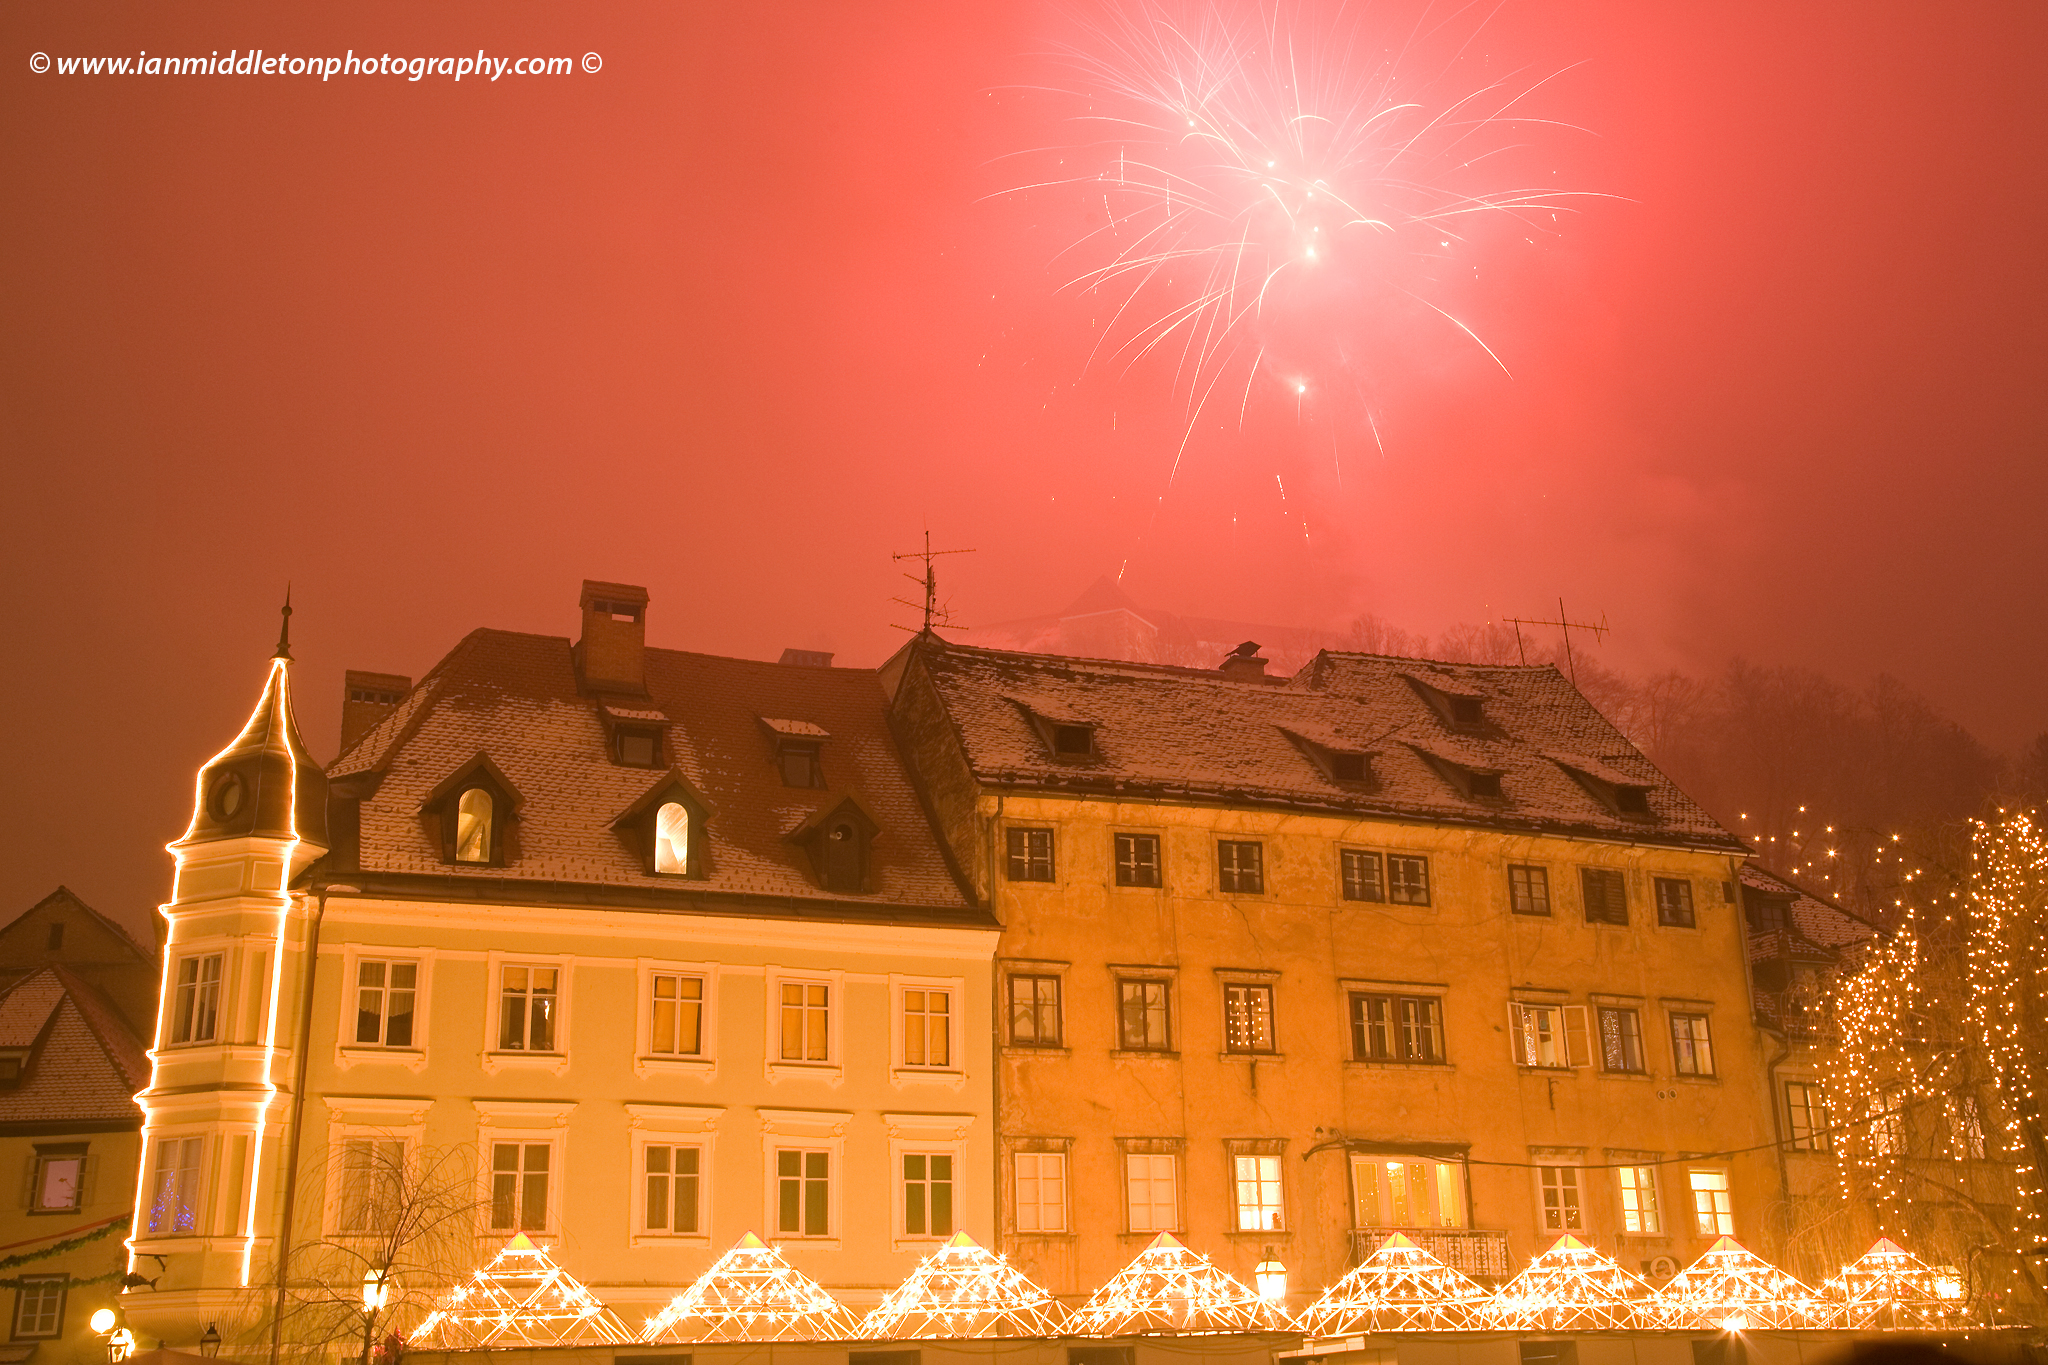 Fireworks from Castle above old town in Ljubljana, Slovenia for new years eve 2007/2008. Unfortunately fog obscured the castle.